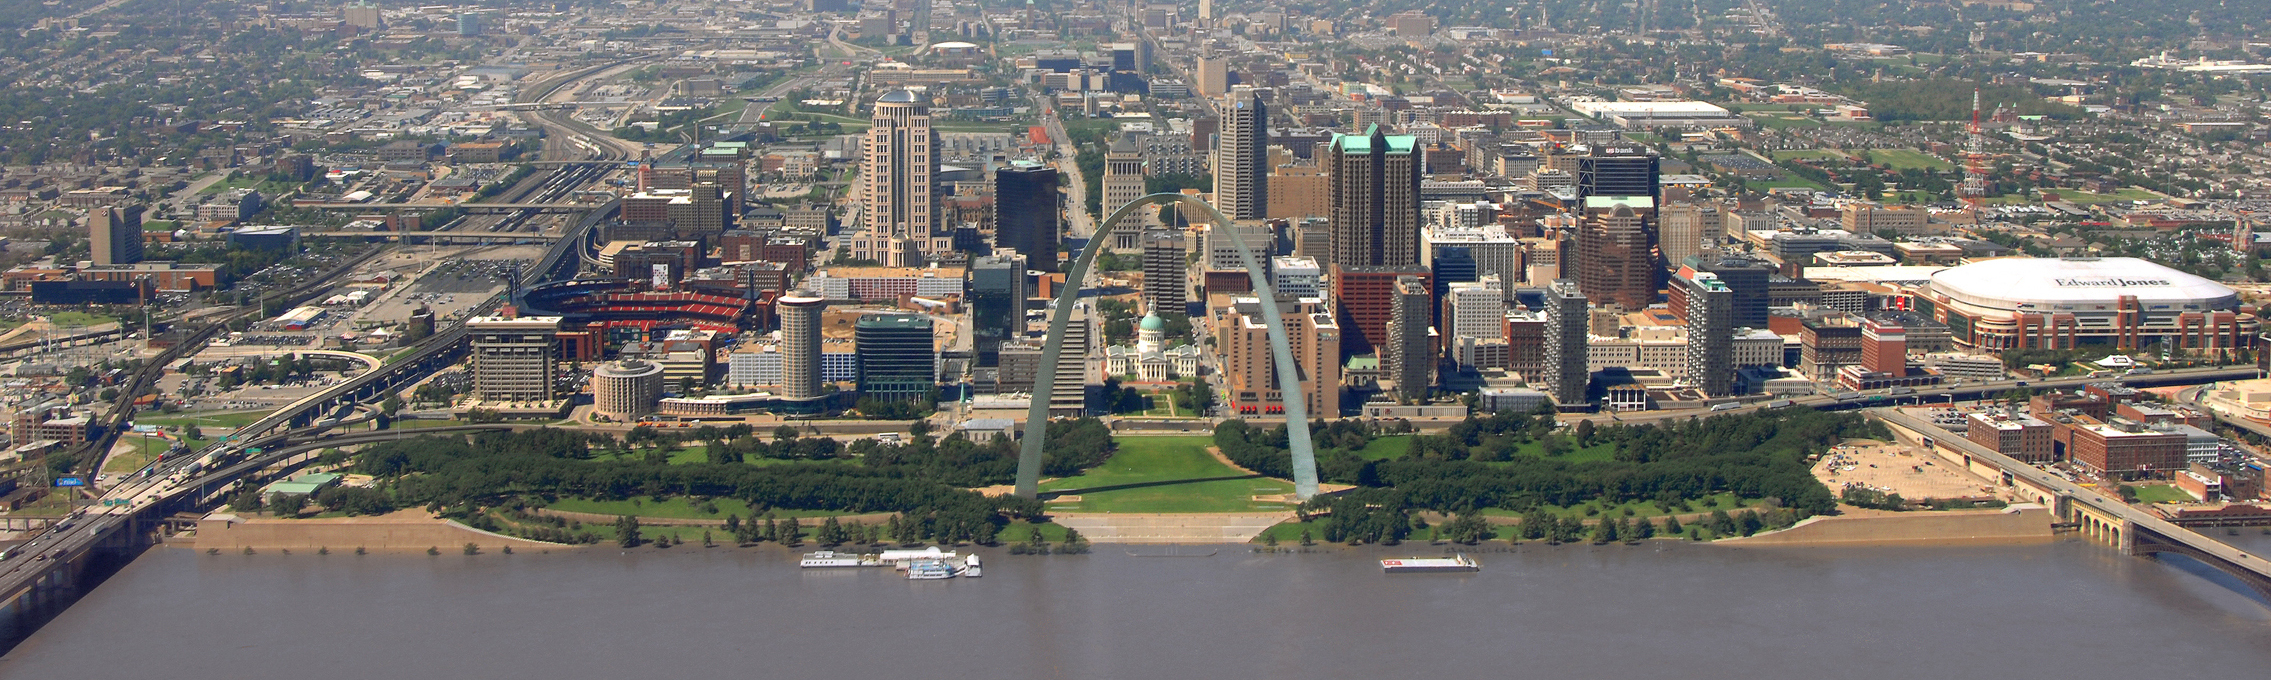 La Route 66 par les airs St._Louis_skyline_September_2008